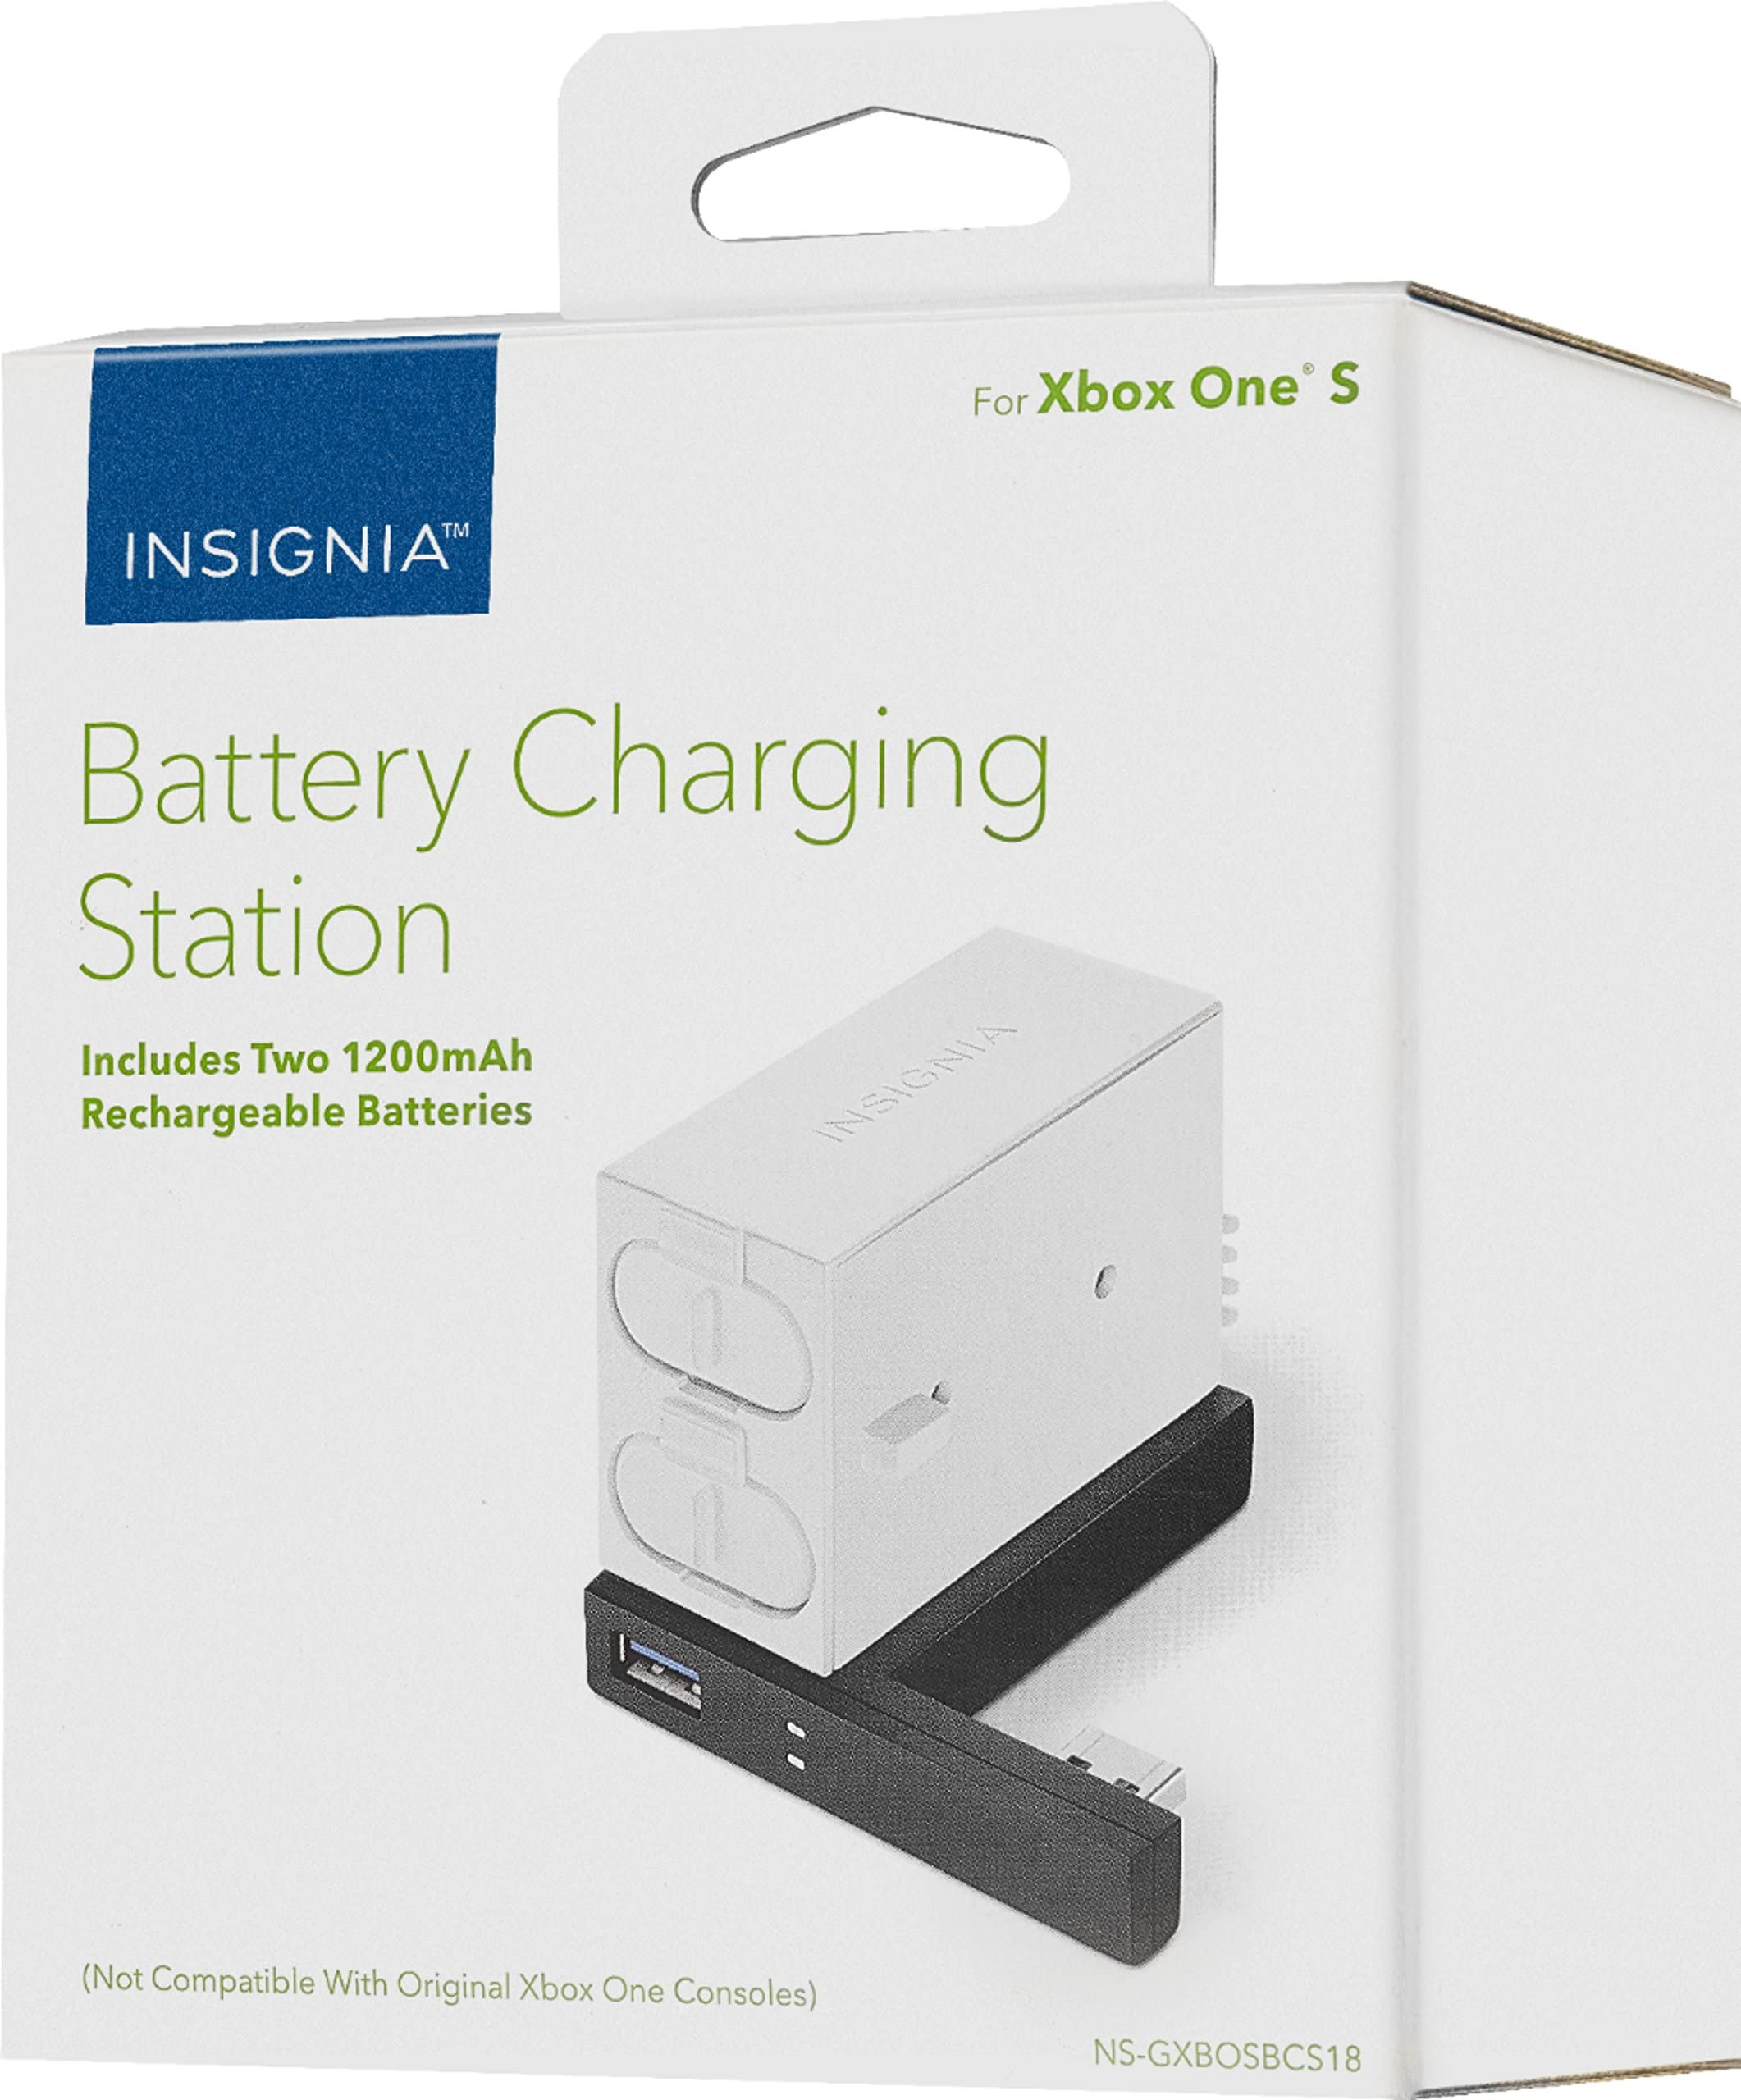 Amazon.com: Insignia - Battery Charging Station for Xbox One S ...